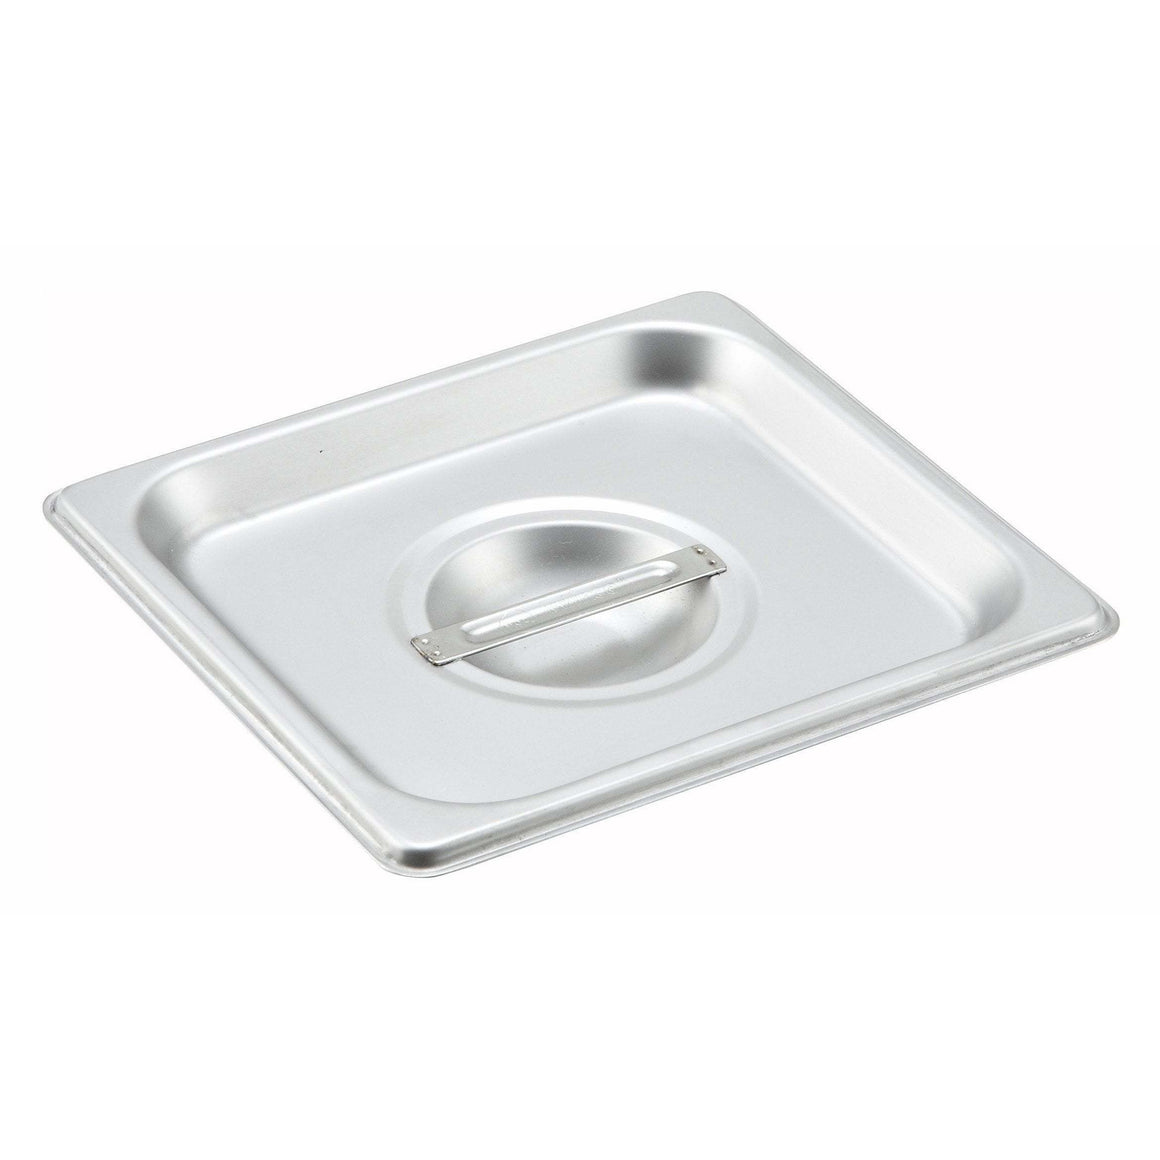 Winco - SPSCS - Stainless Steel Steam Pan Cover, 1/6 Size, Solid - Steam Table